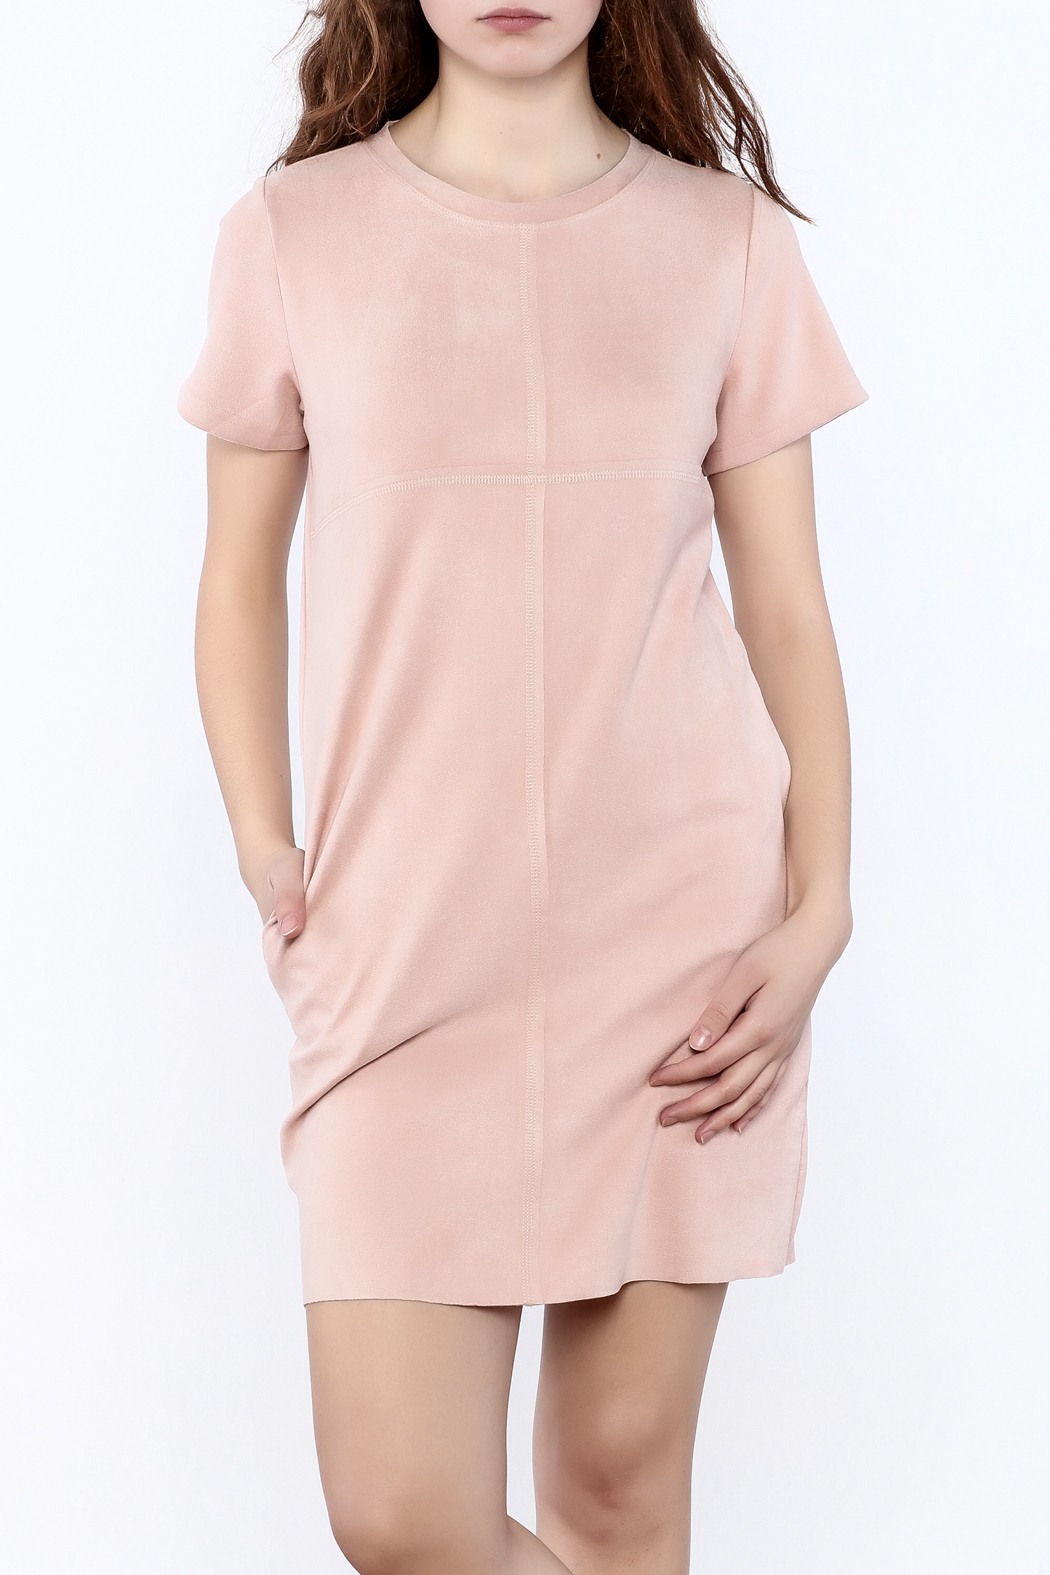 JOH Faux Suede Shift Dress - Front Cropped Image